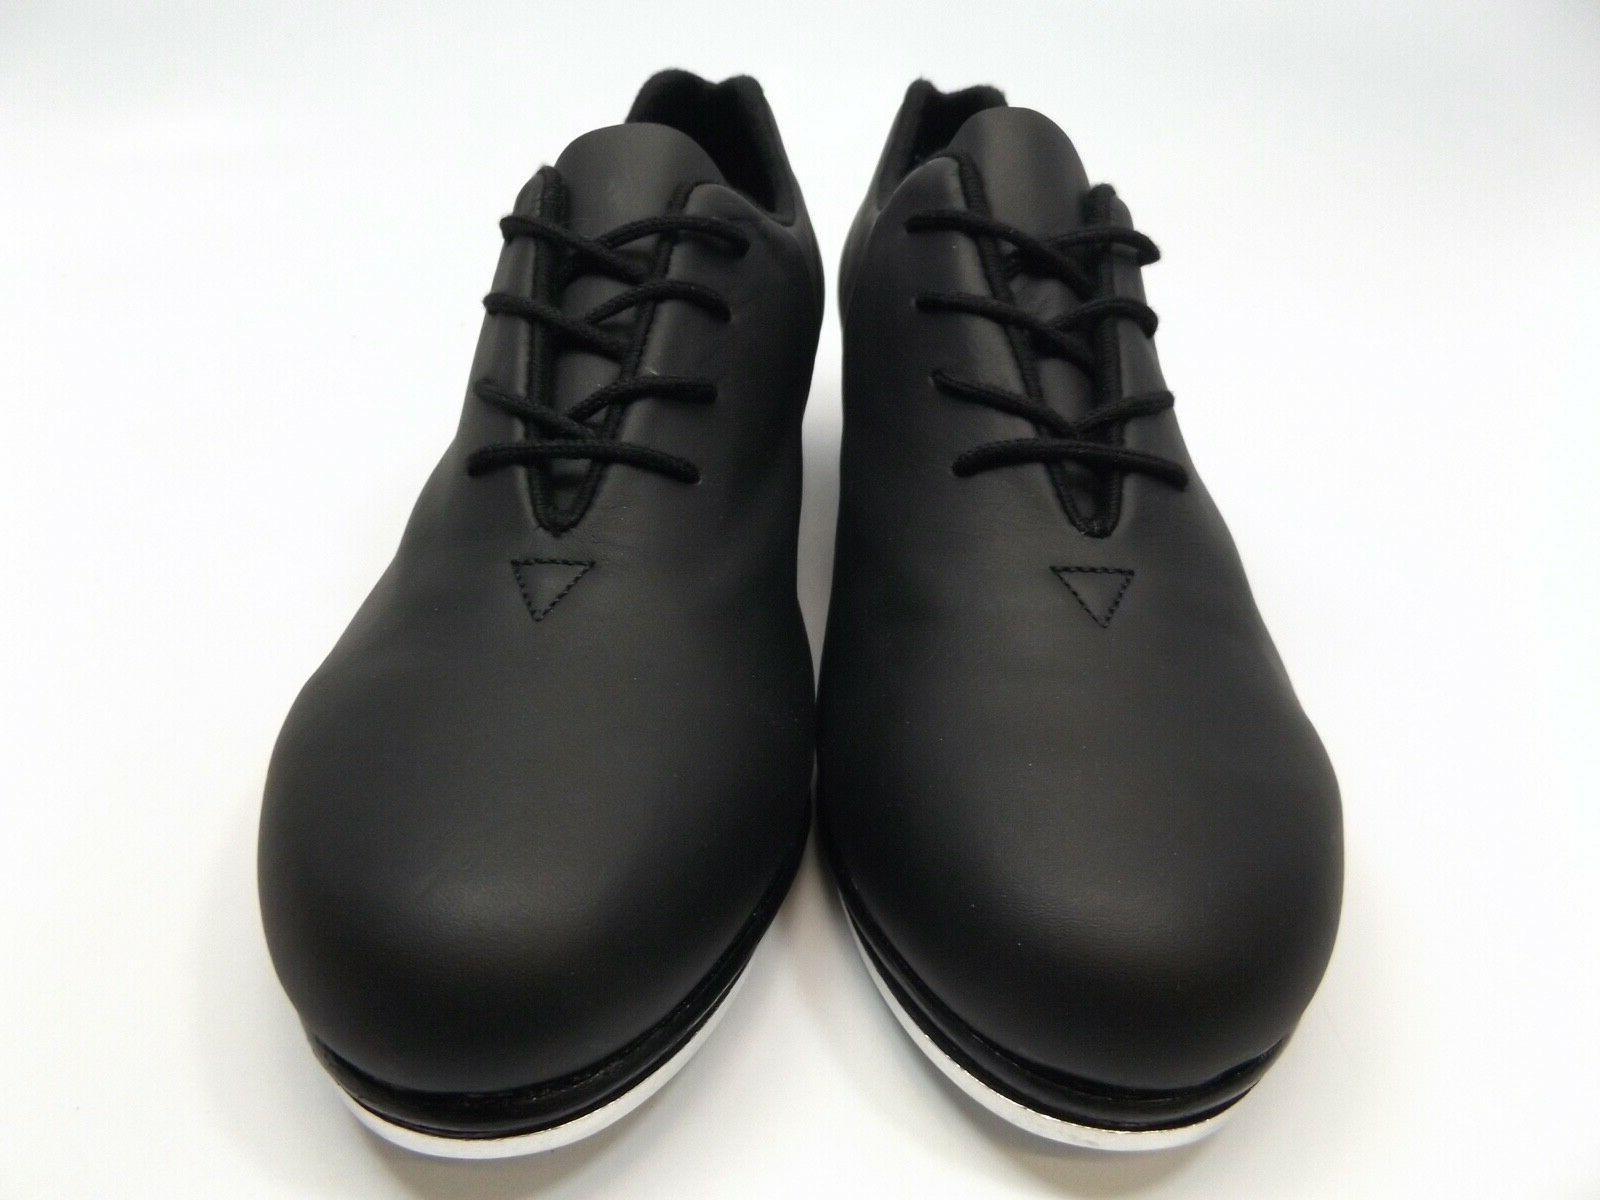 New S0381L Audeo Tap Leather tap Womens SZ 8.5 14262